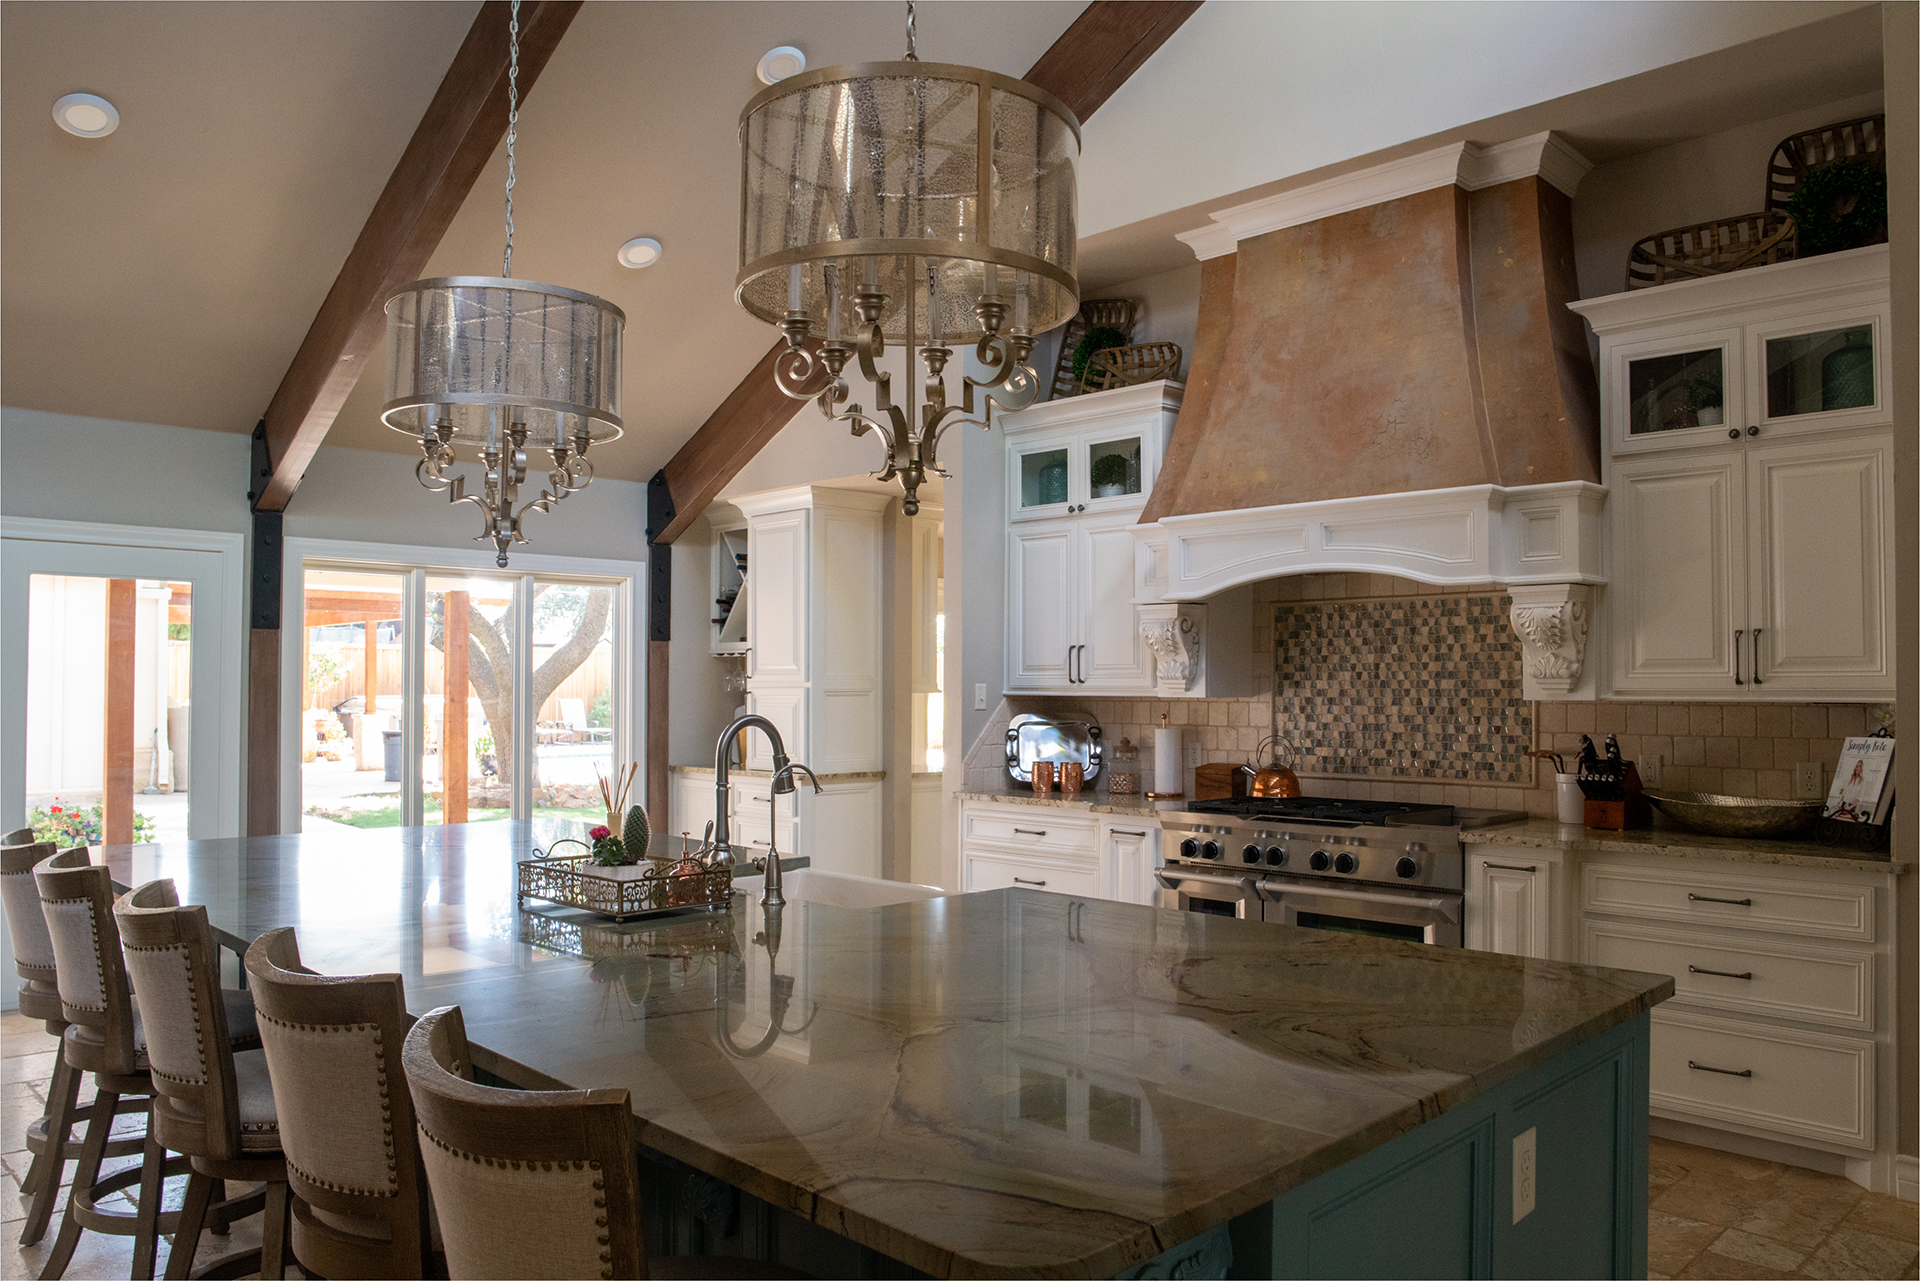 5 Tips for Keeping Your Marble Countertops Clean